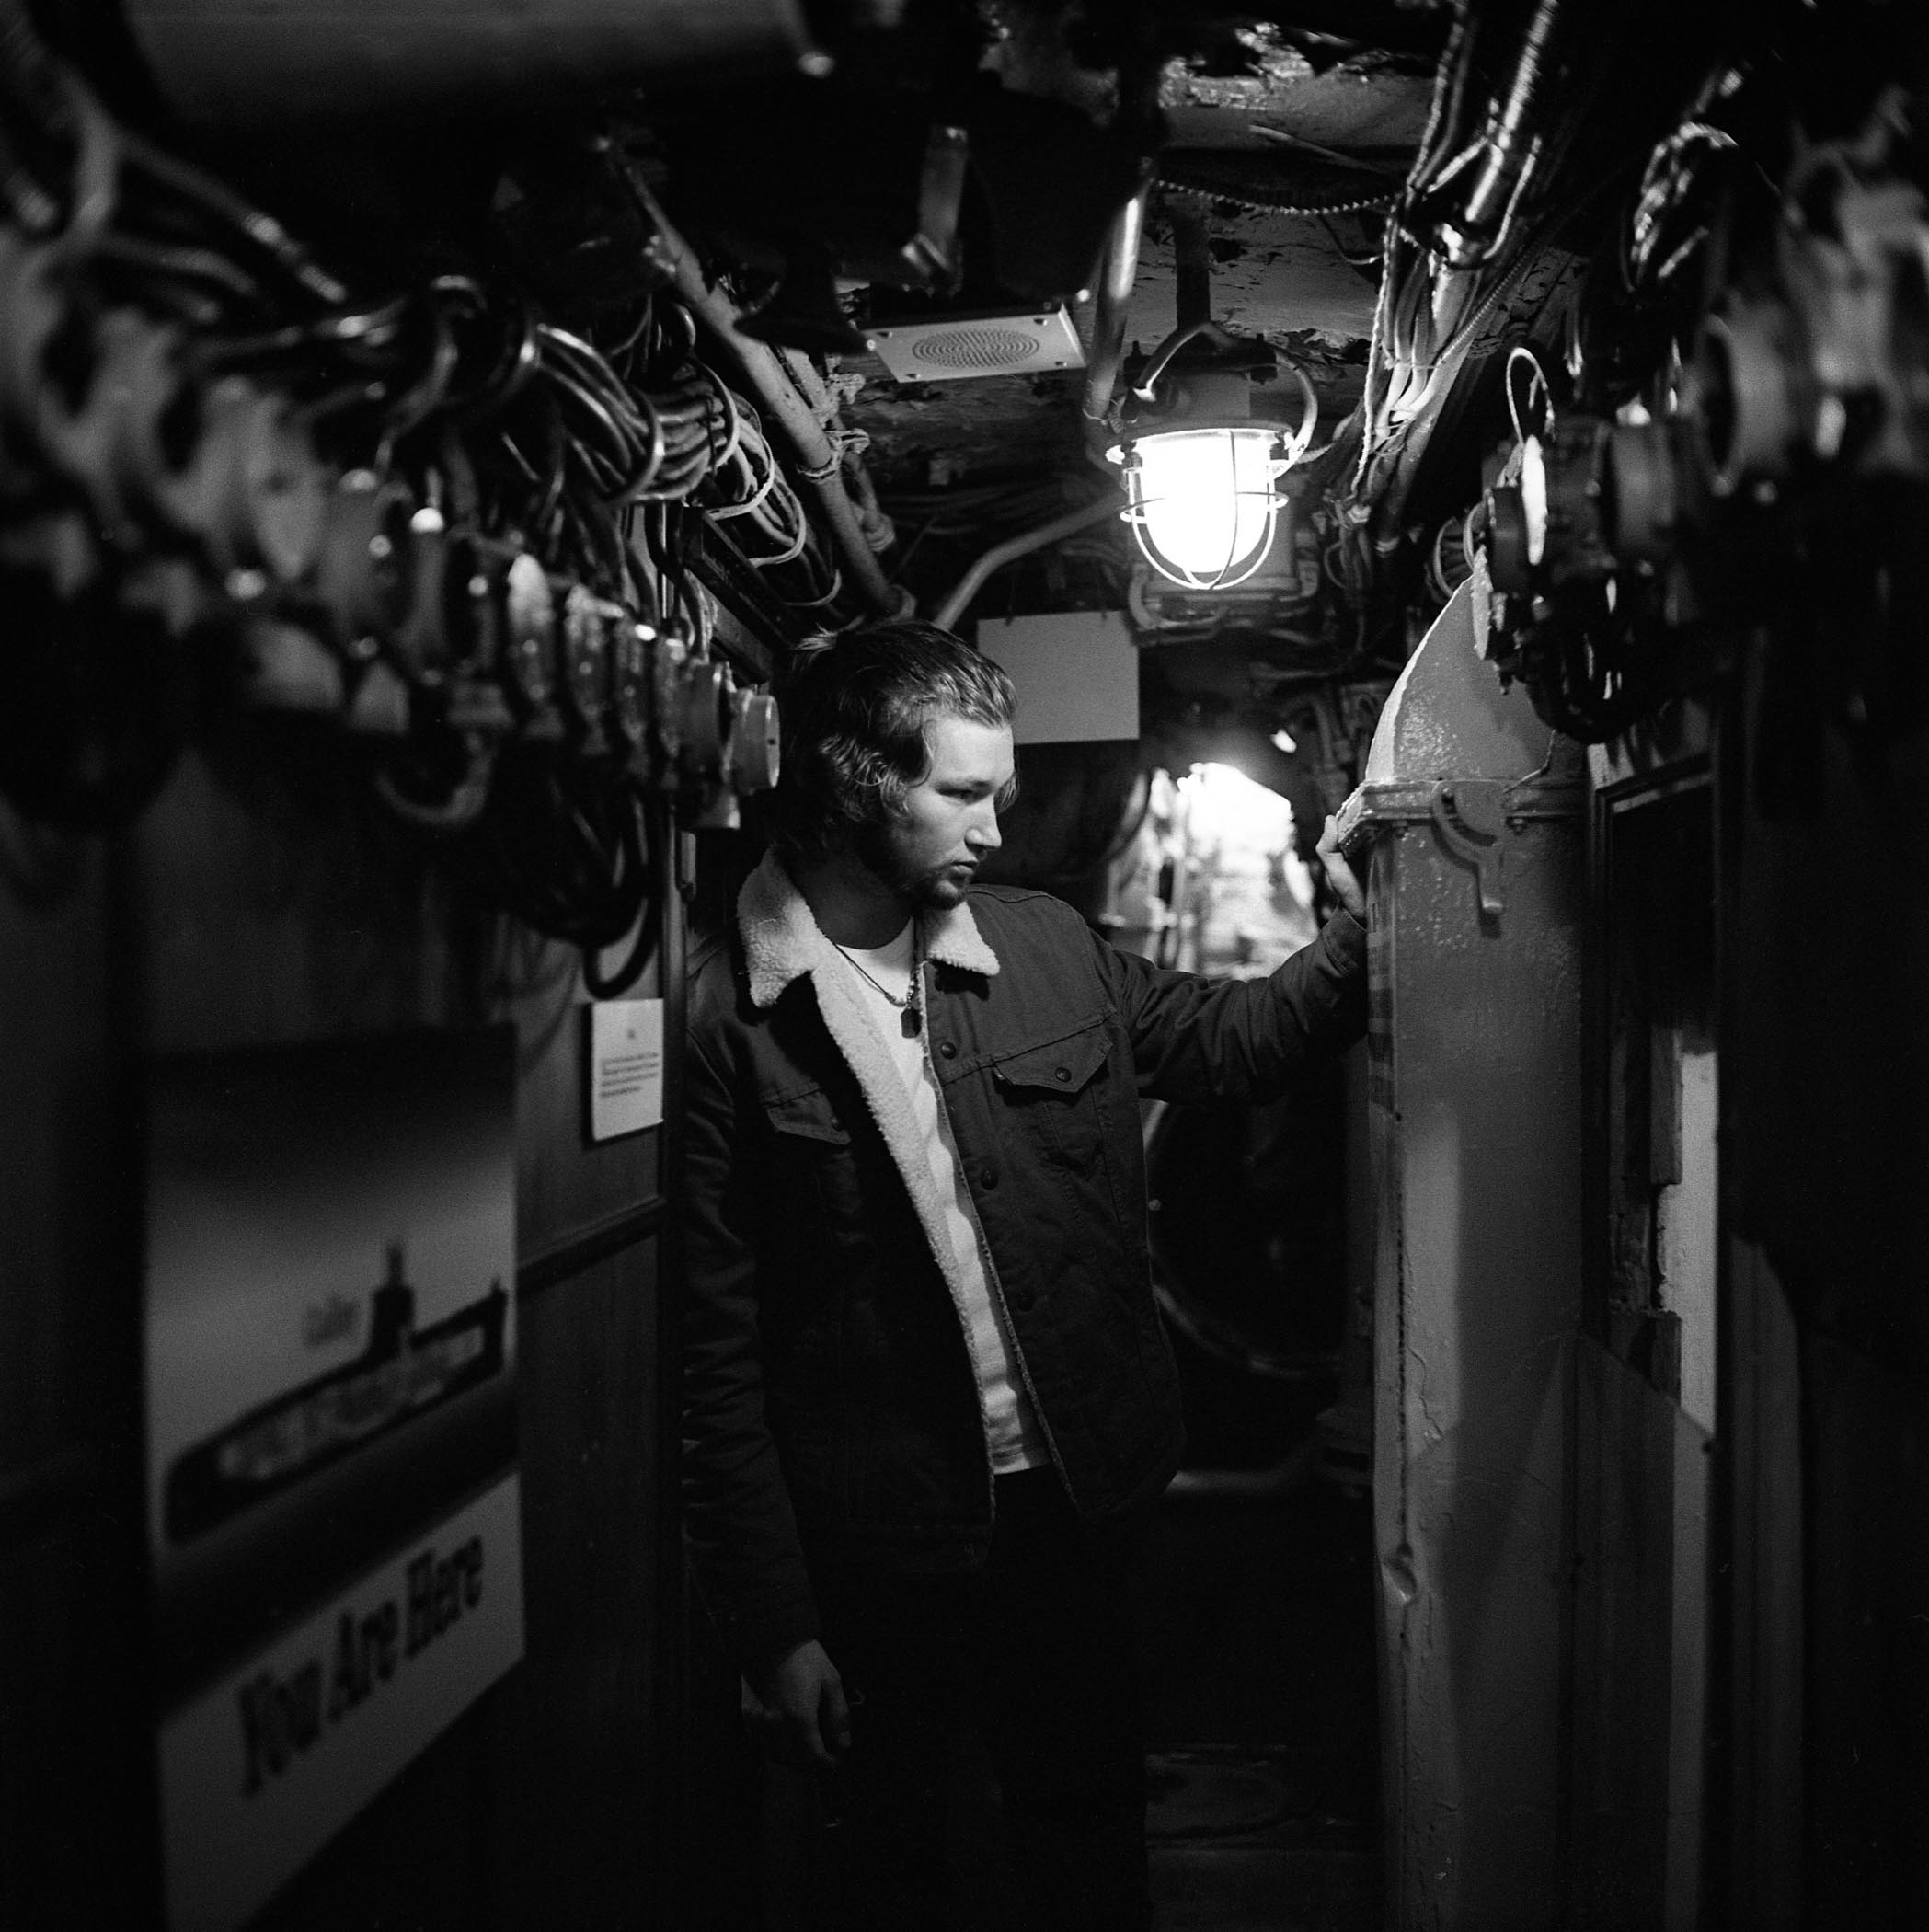 Black and white photo of a person in a dark mechanical hallway